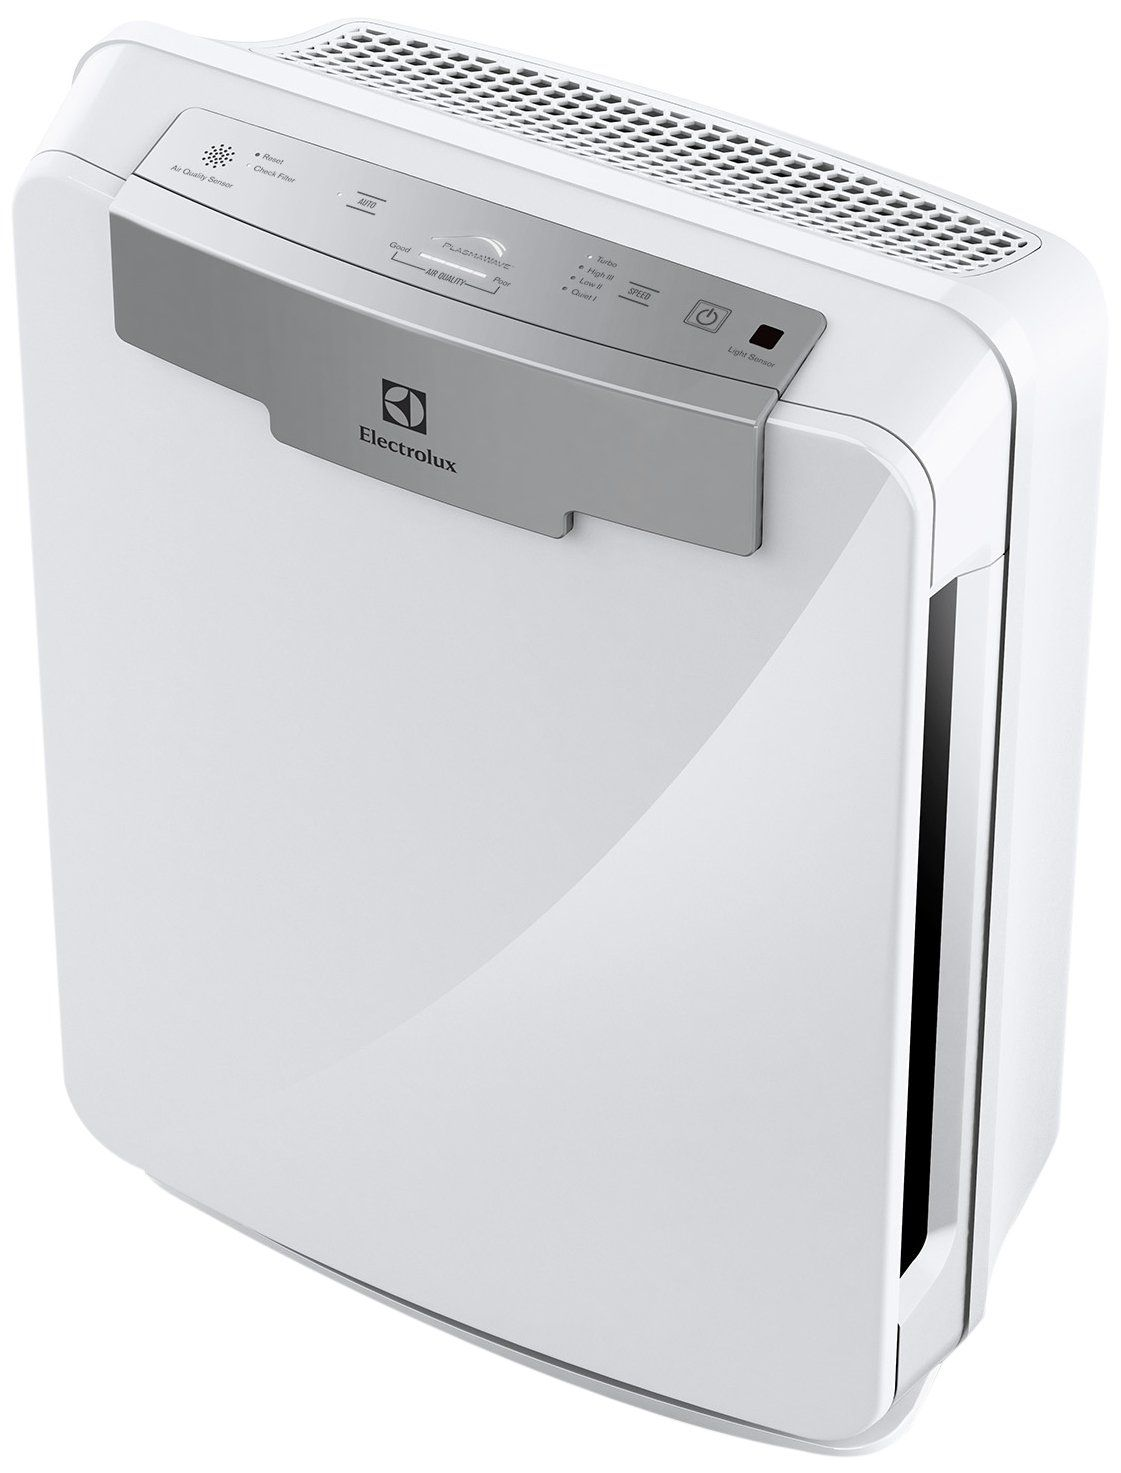 Electrolux Pureoxygen Allergy 300 Hepa 4 Stage Filtration Air Cleaner Air Purifier White Air Purifier Air Cleaner Electrolux